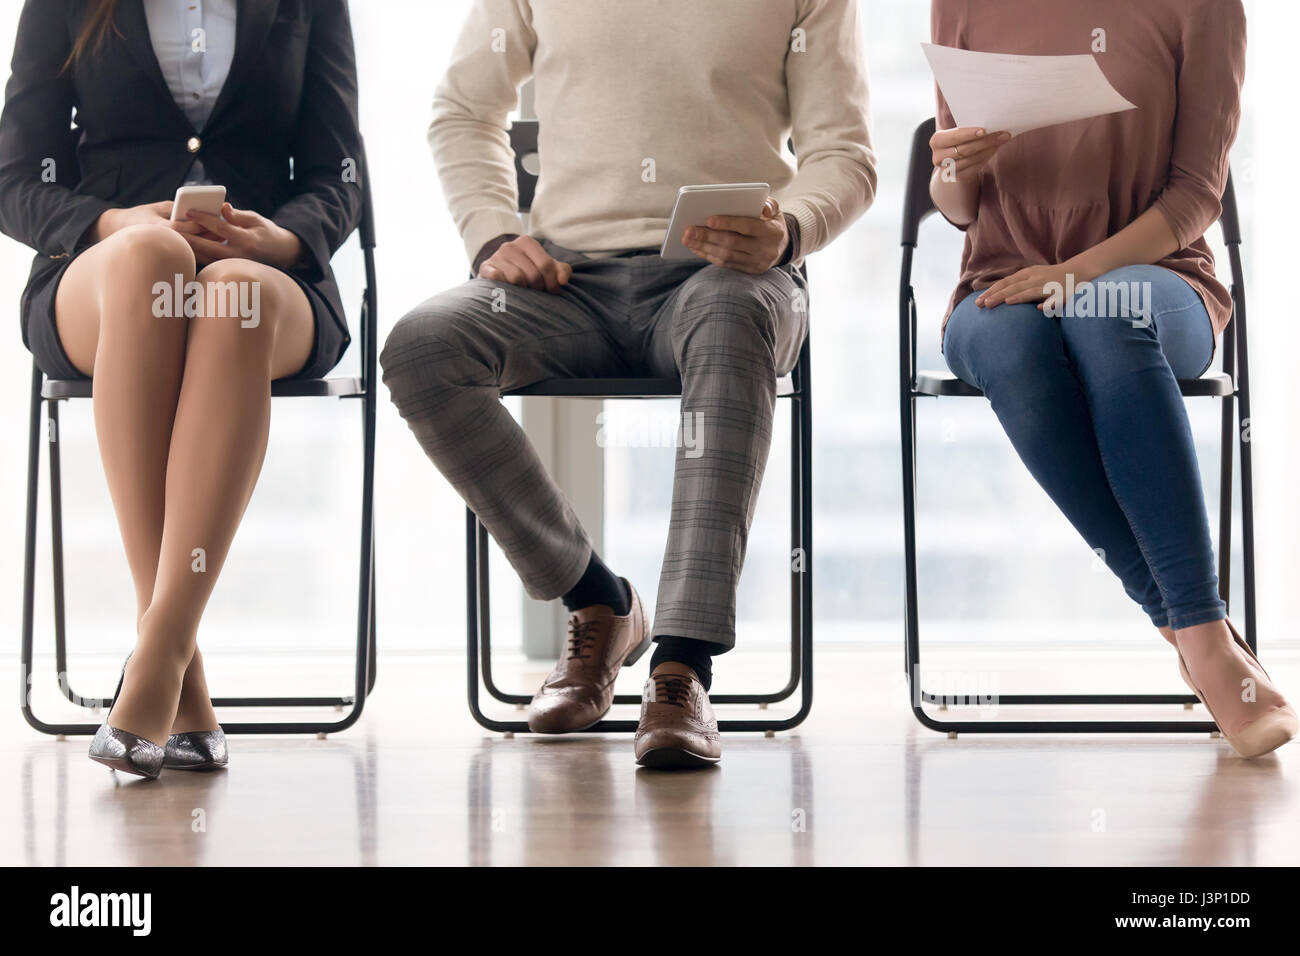 Group of people waiting for job interview, sitting on chairs - Stock Image